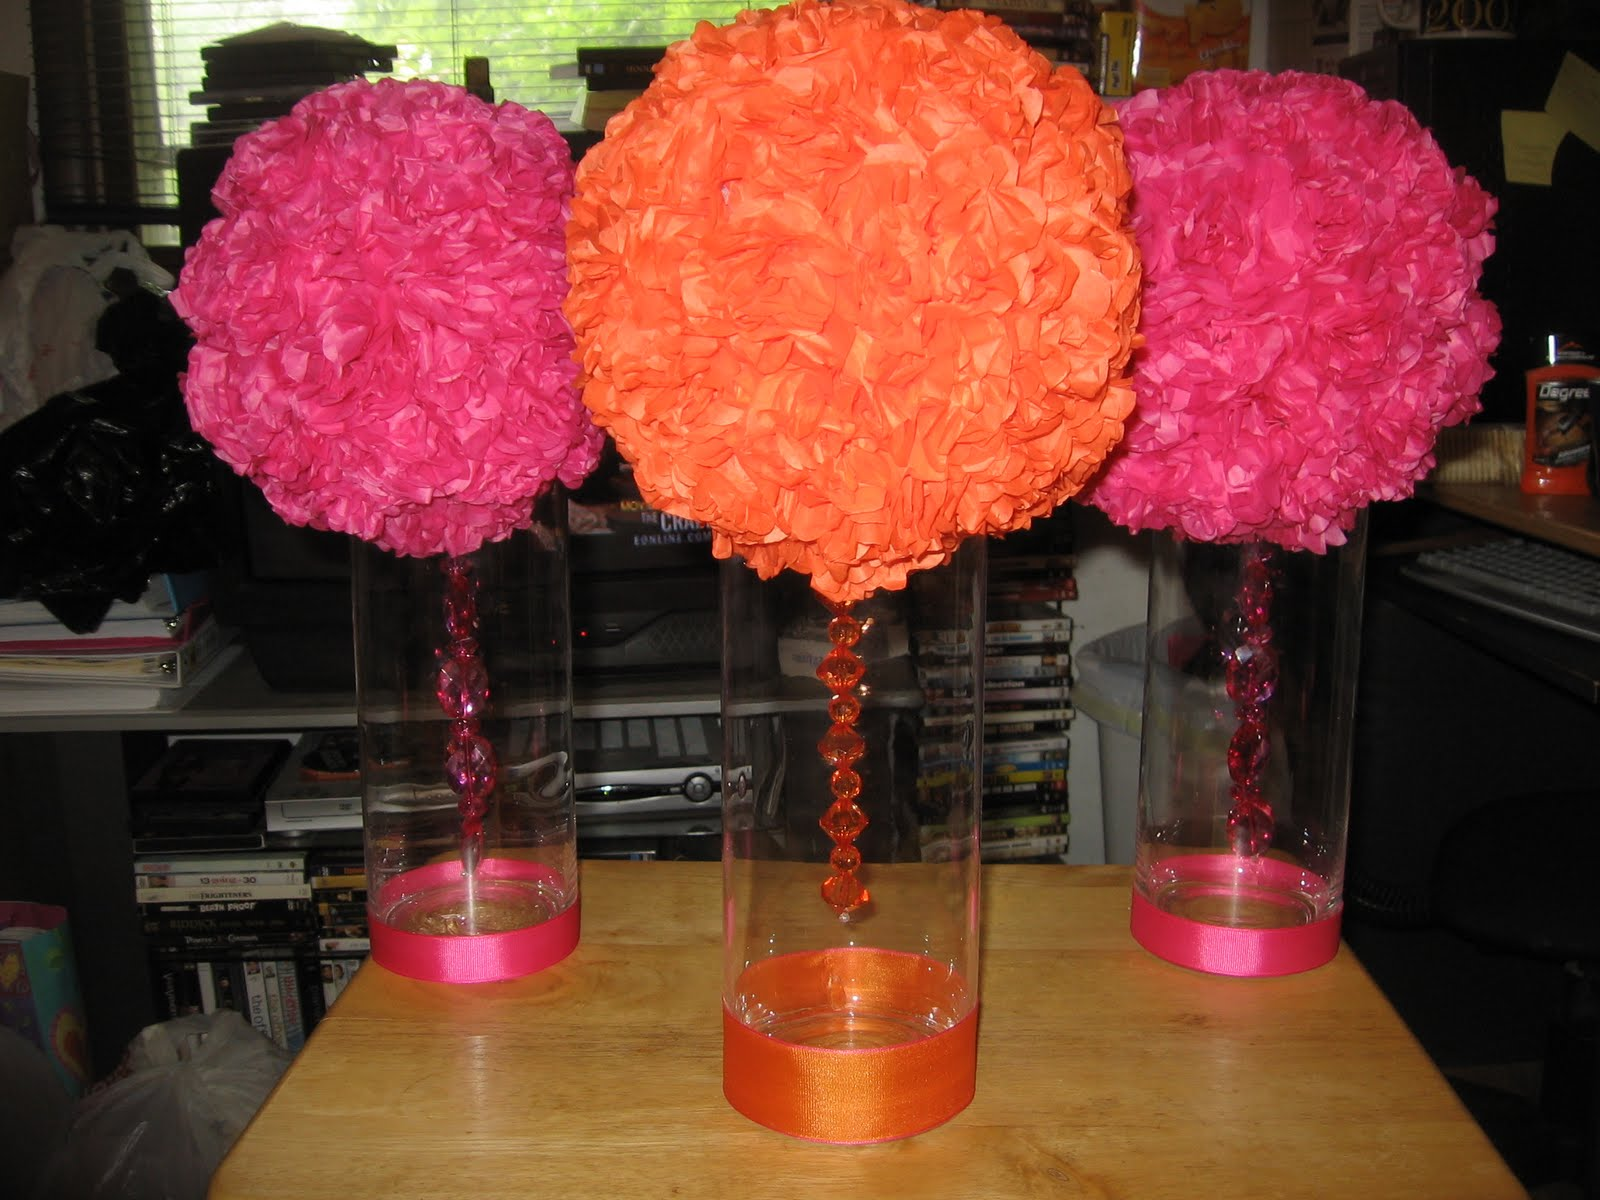 The diy bride escort card table centerpieces finished